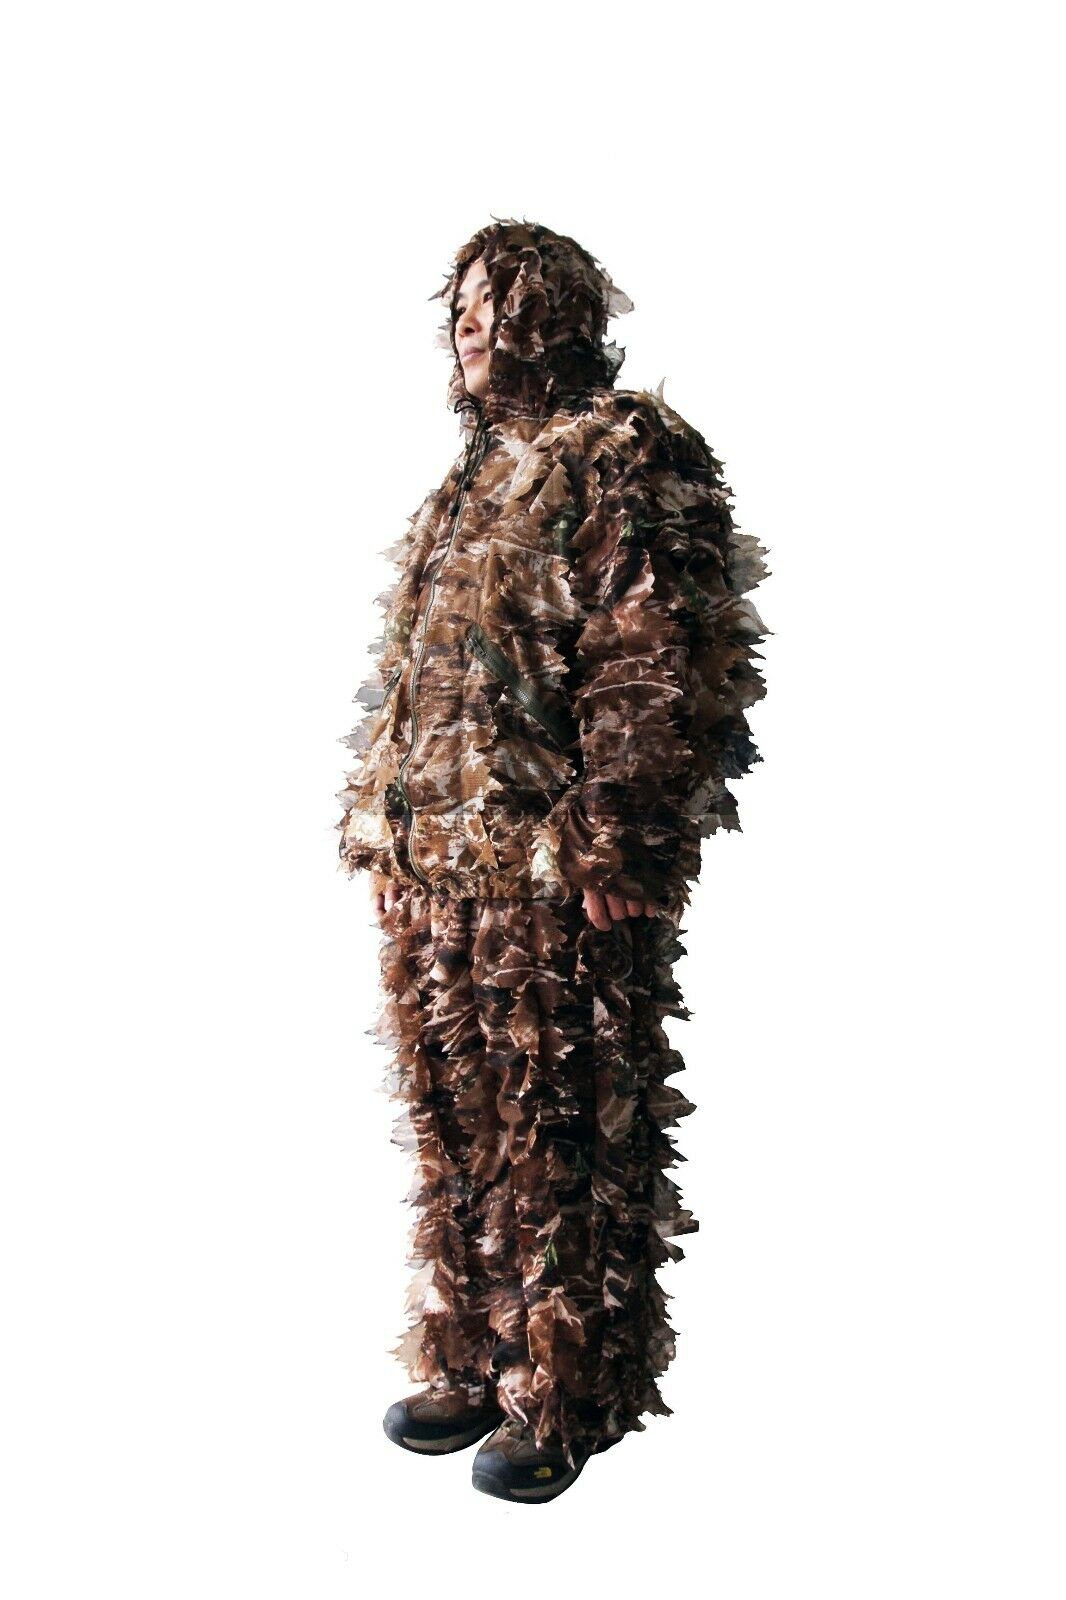 Military Camo Woodland Ghillie Suit Green Brown  Leaf Camouflage Suit Hunting  best quality best price